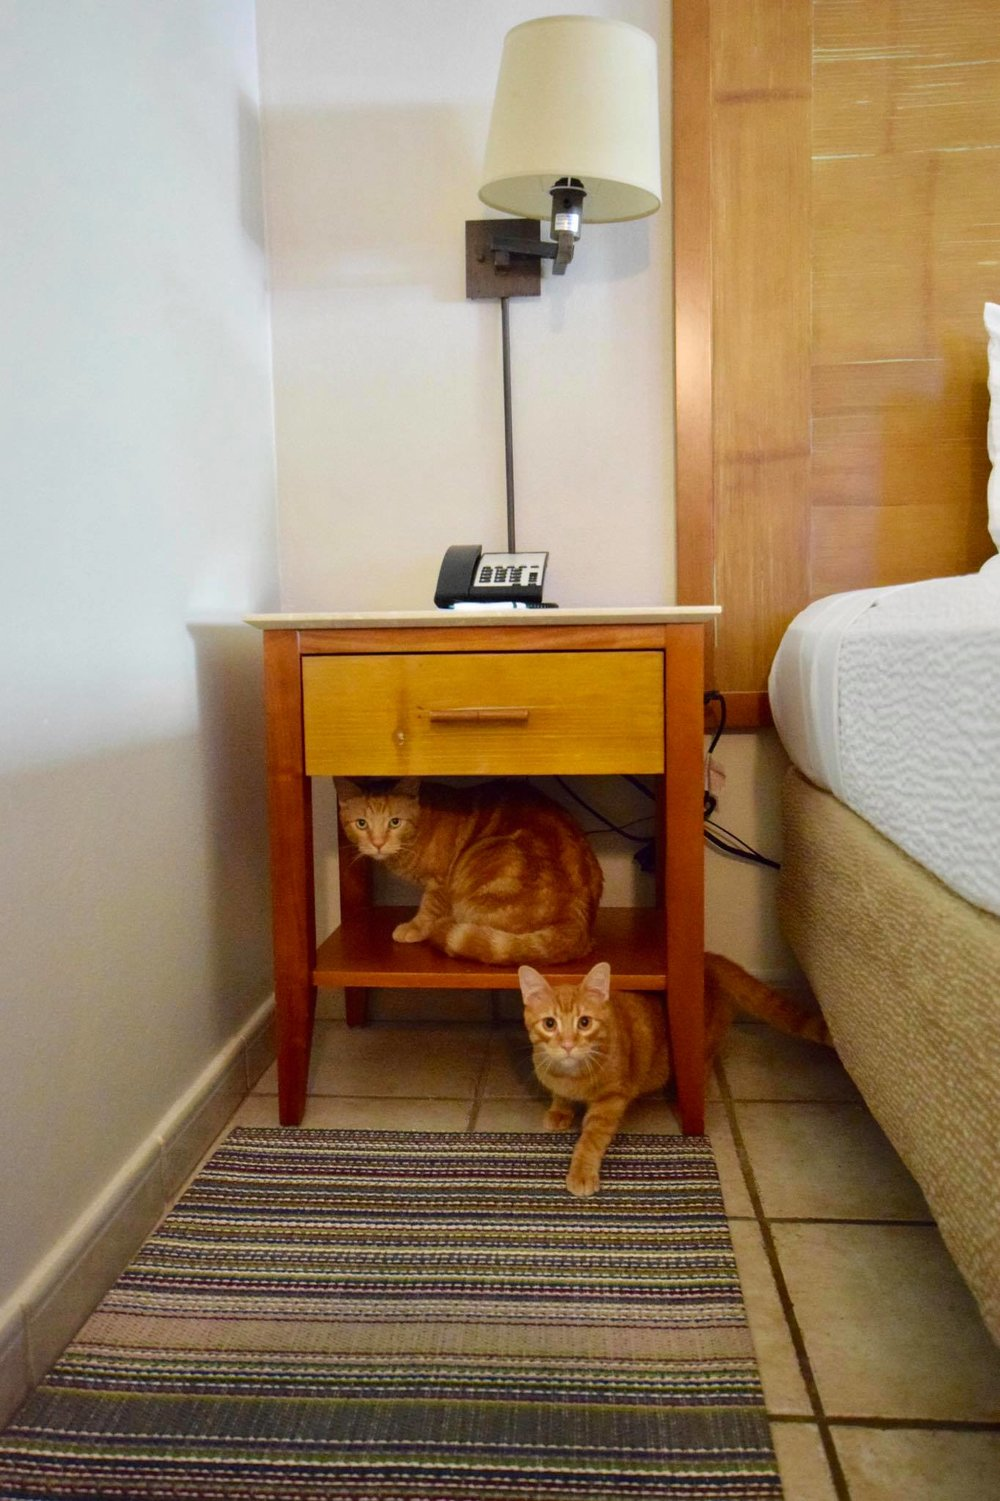 Sailing Life Day 322 Hotel Life of The Sailors Cats - Captain Ahab & Little Zissou's Luxury Staycation4.jpg